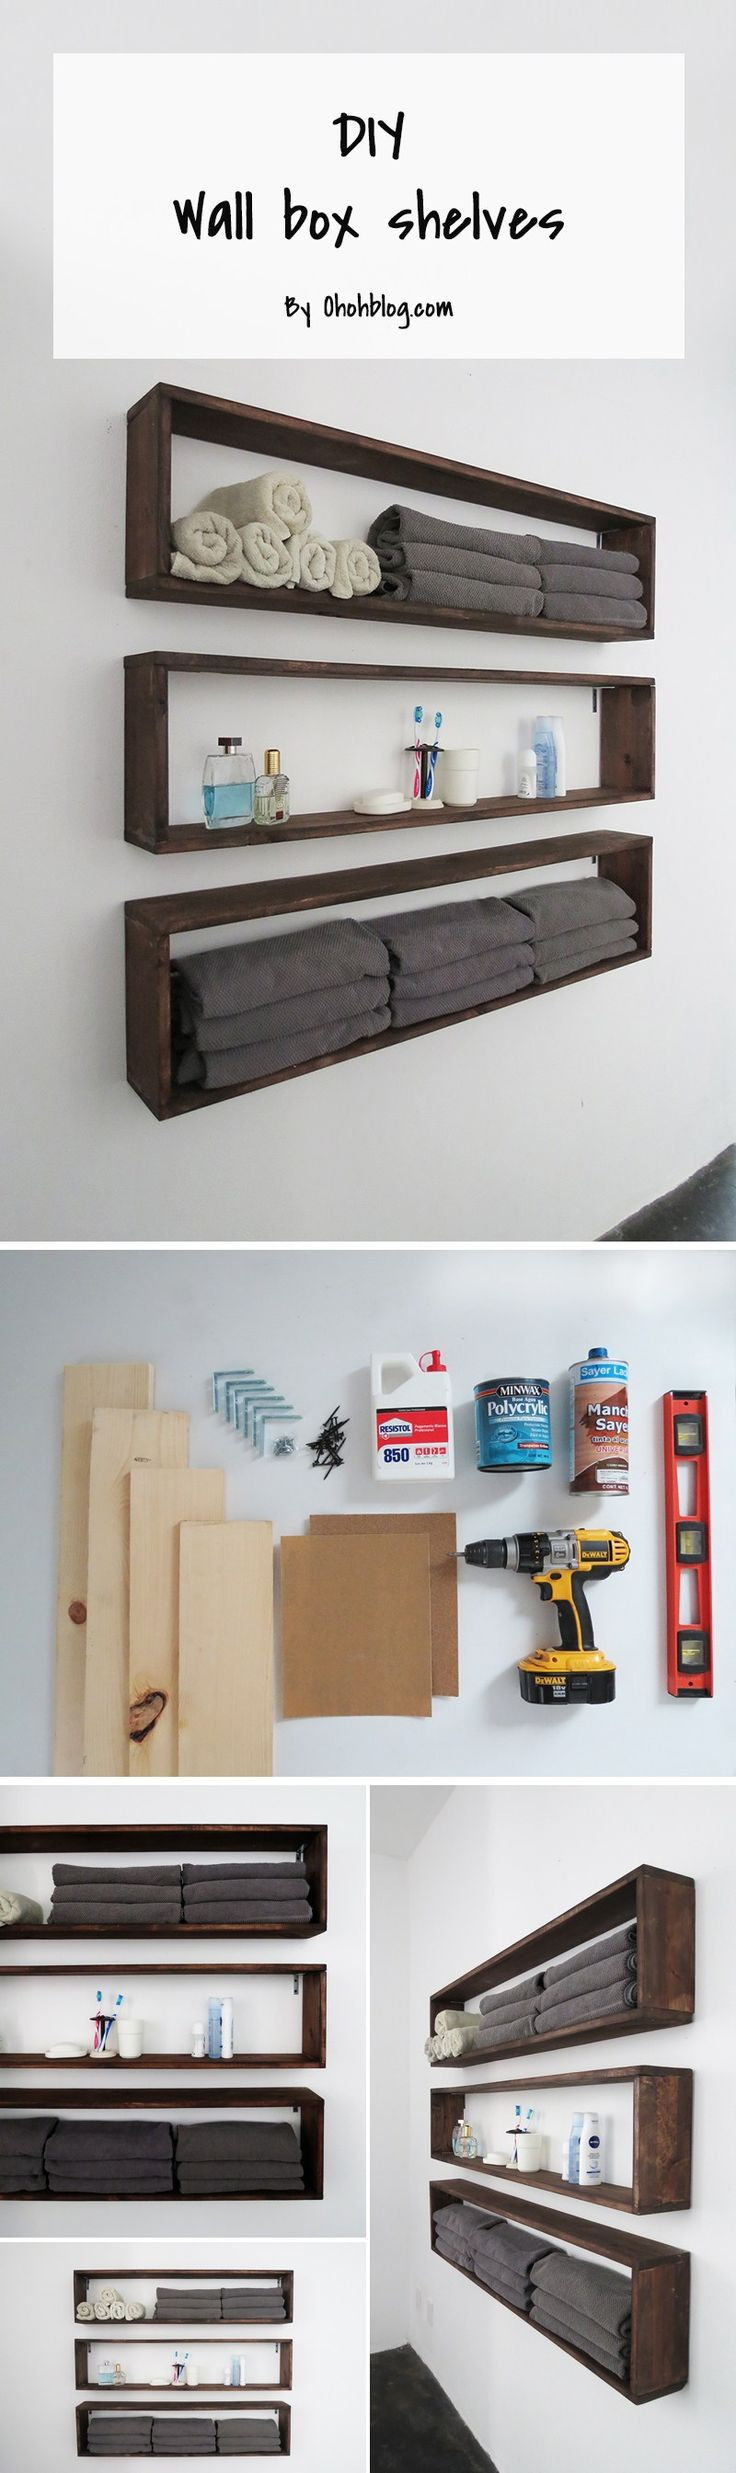 DIY Wall Box Shelves